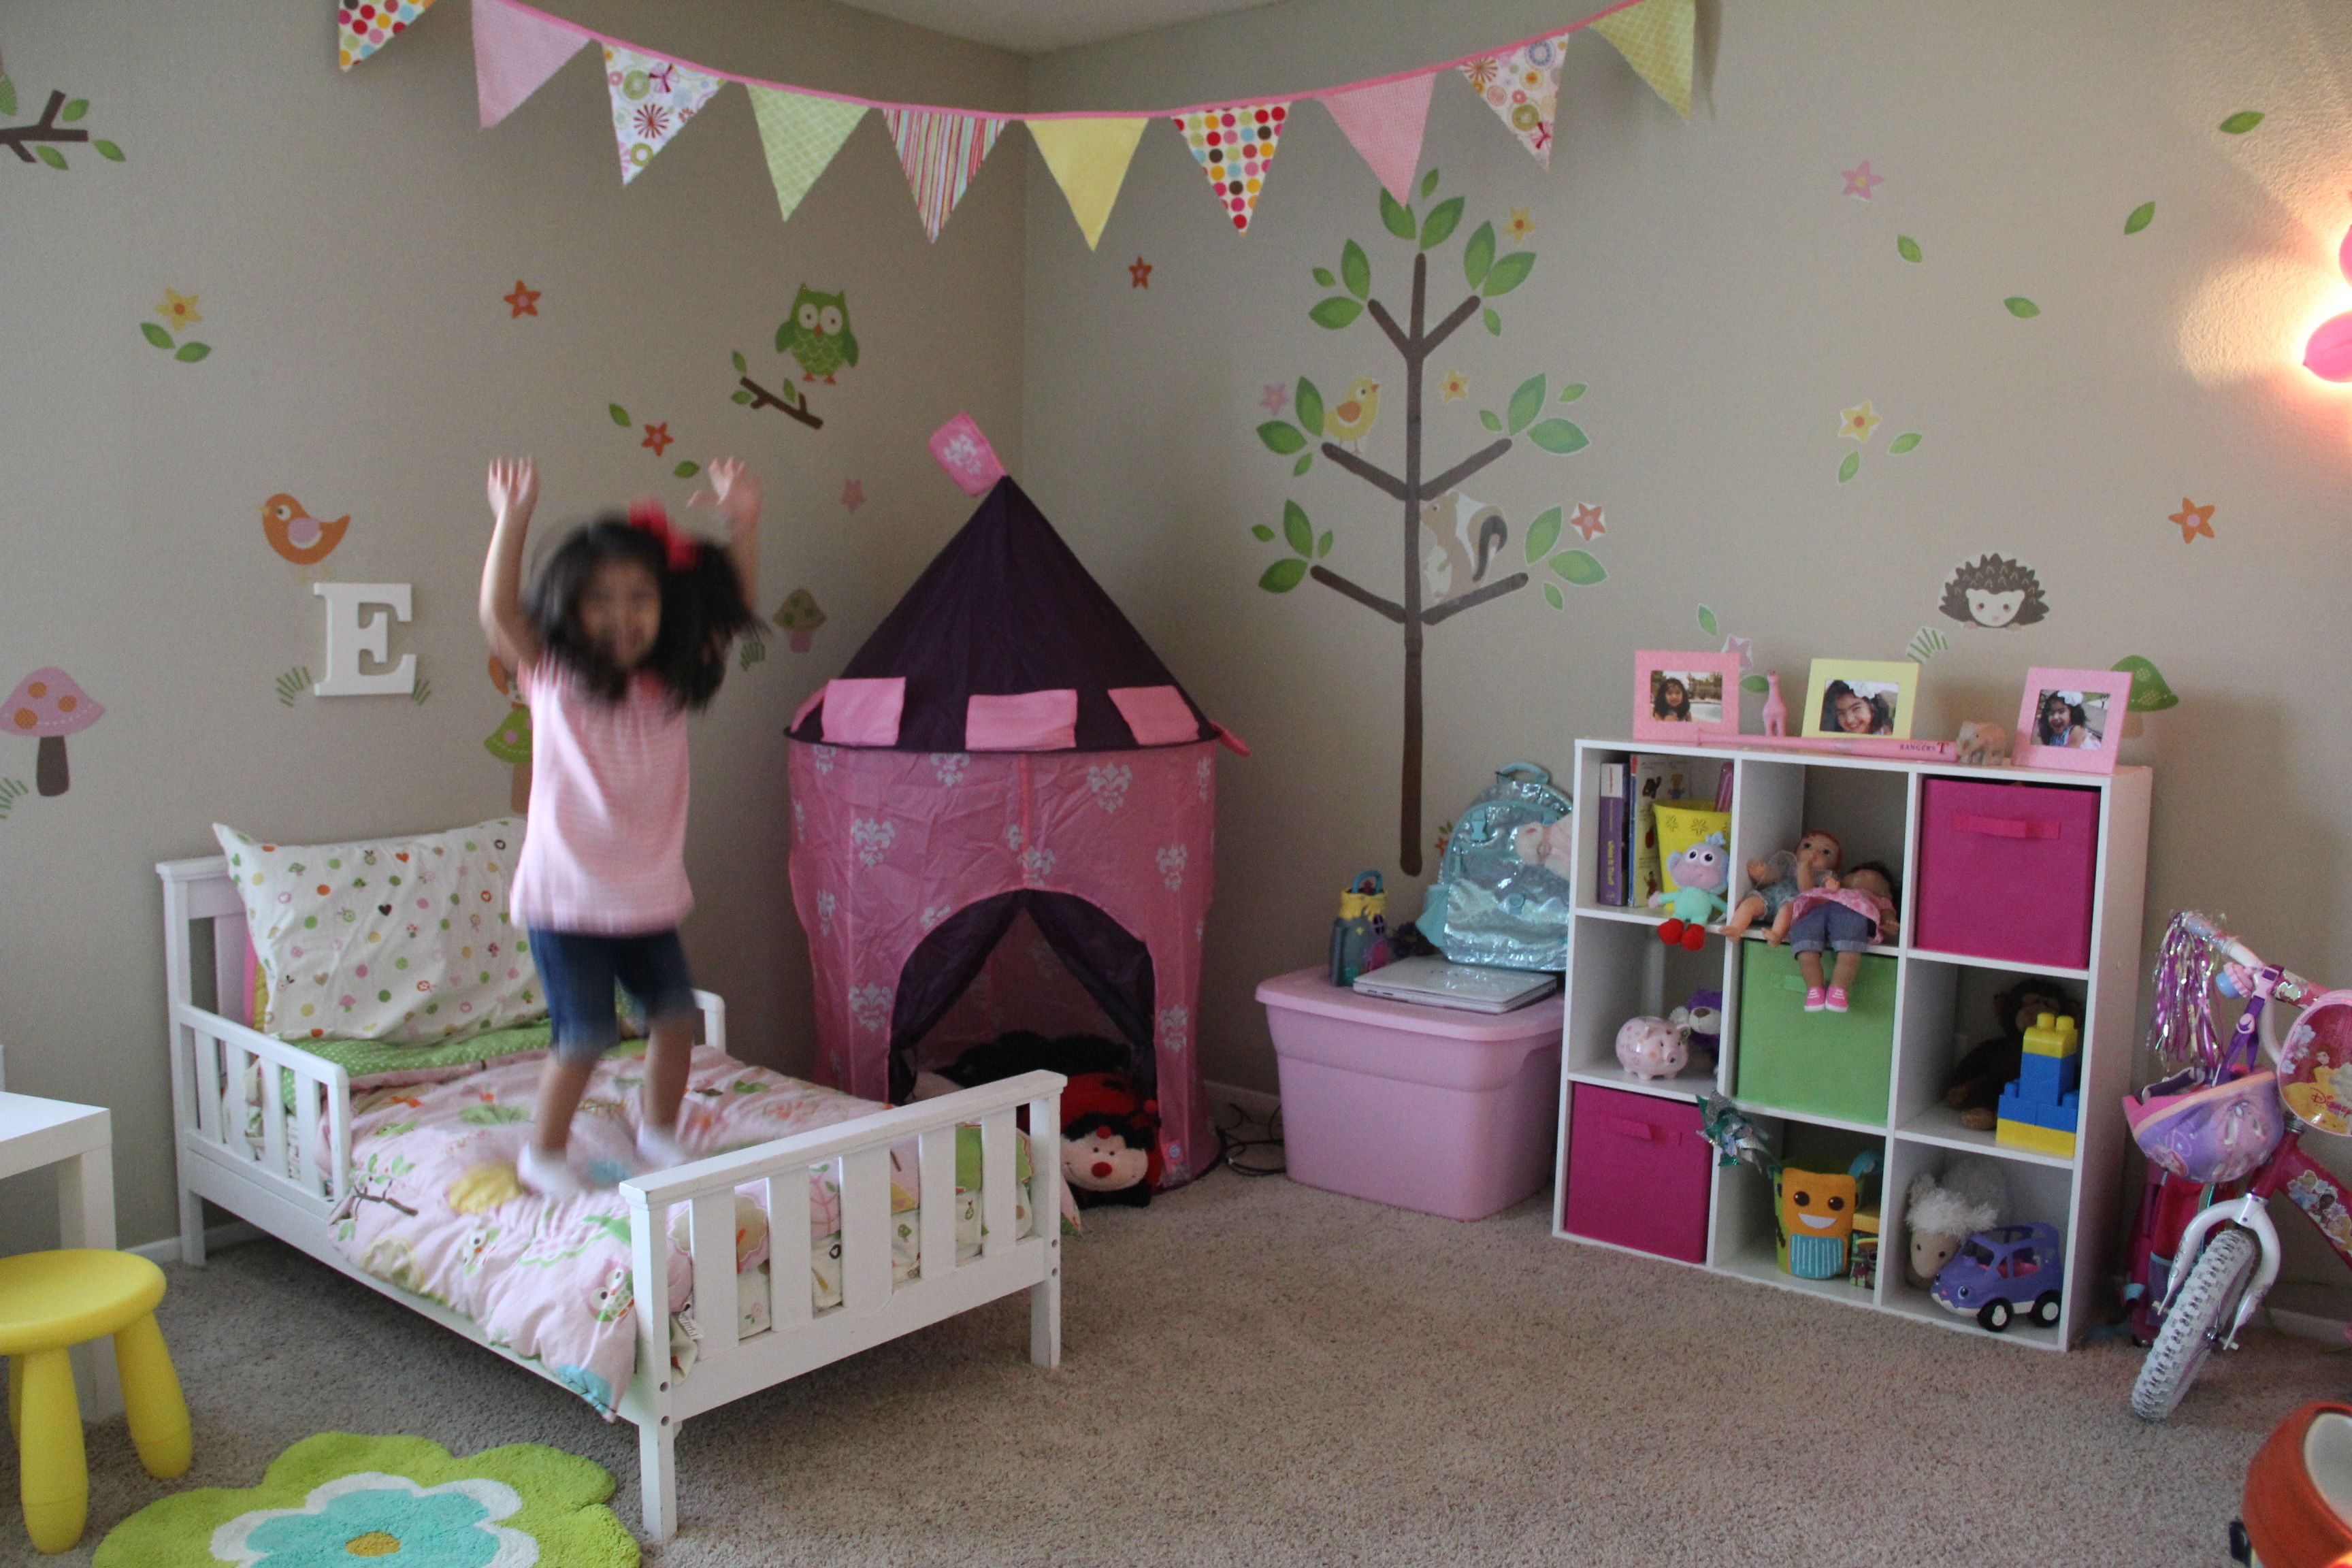 Excited about her new room!